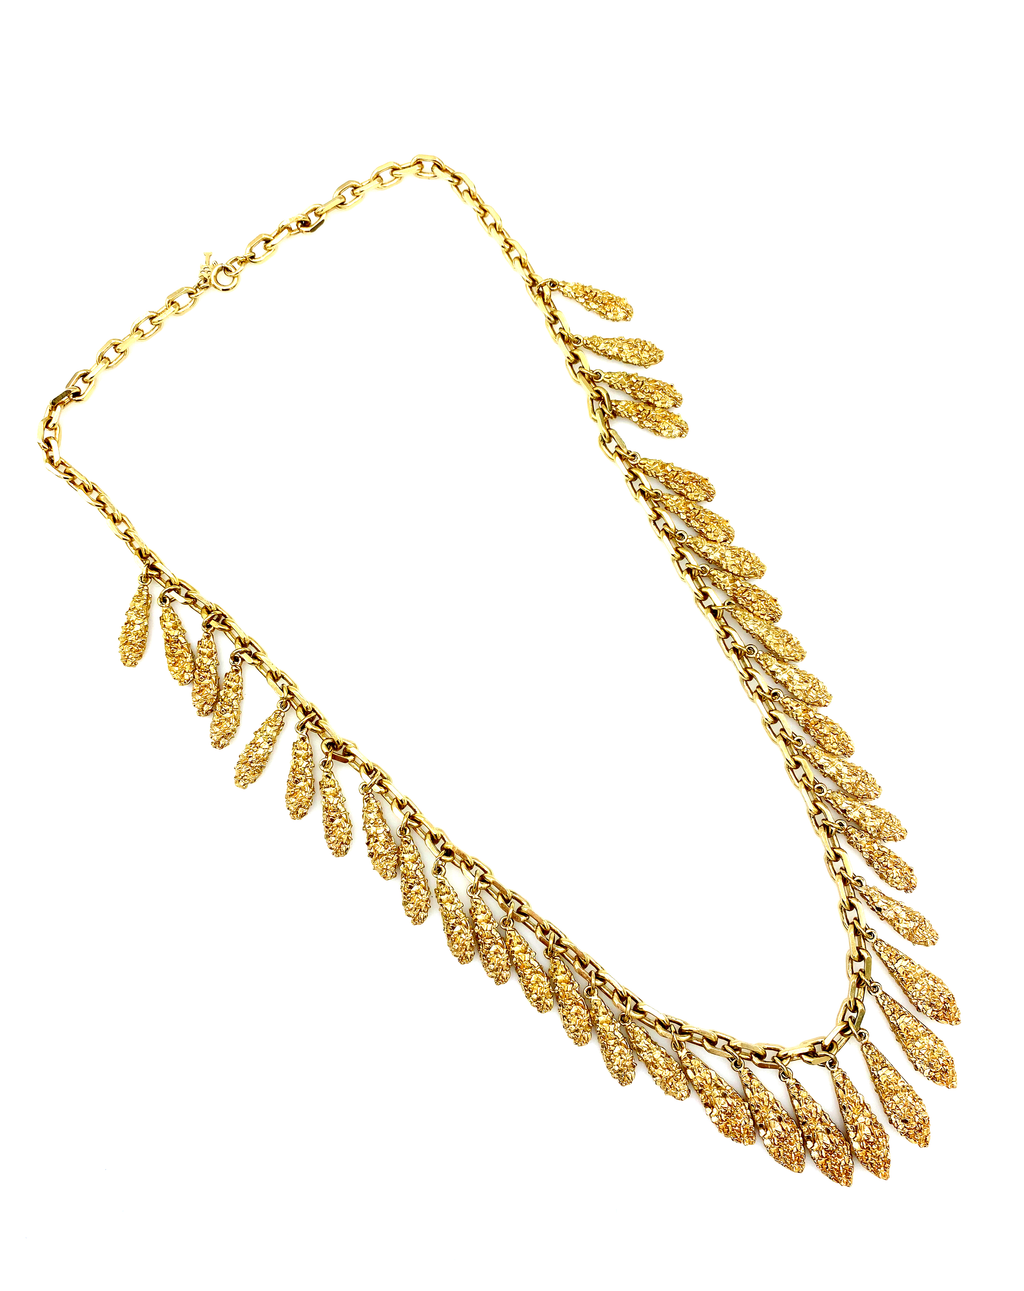 Trifari Gold Confetti Fringe Classic Necklace-Sustainable Fashion with Vintage Style-Trending Designer Fashion-24 Wishes